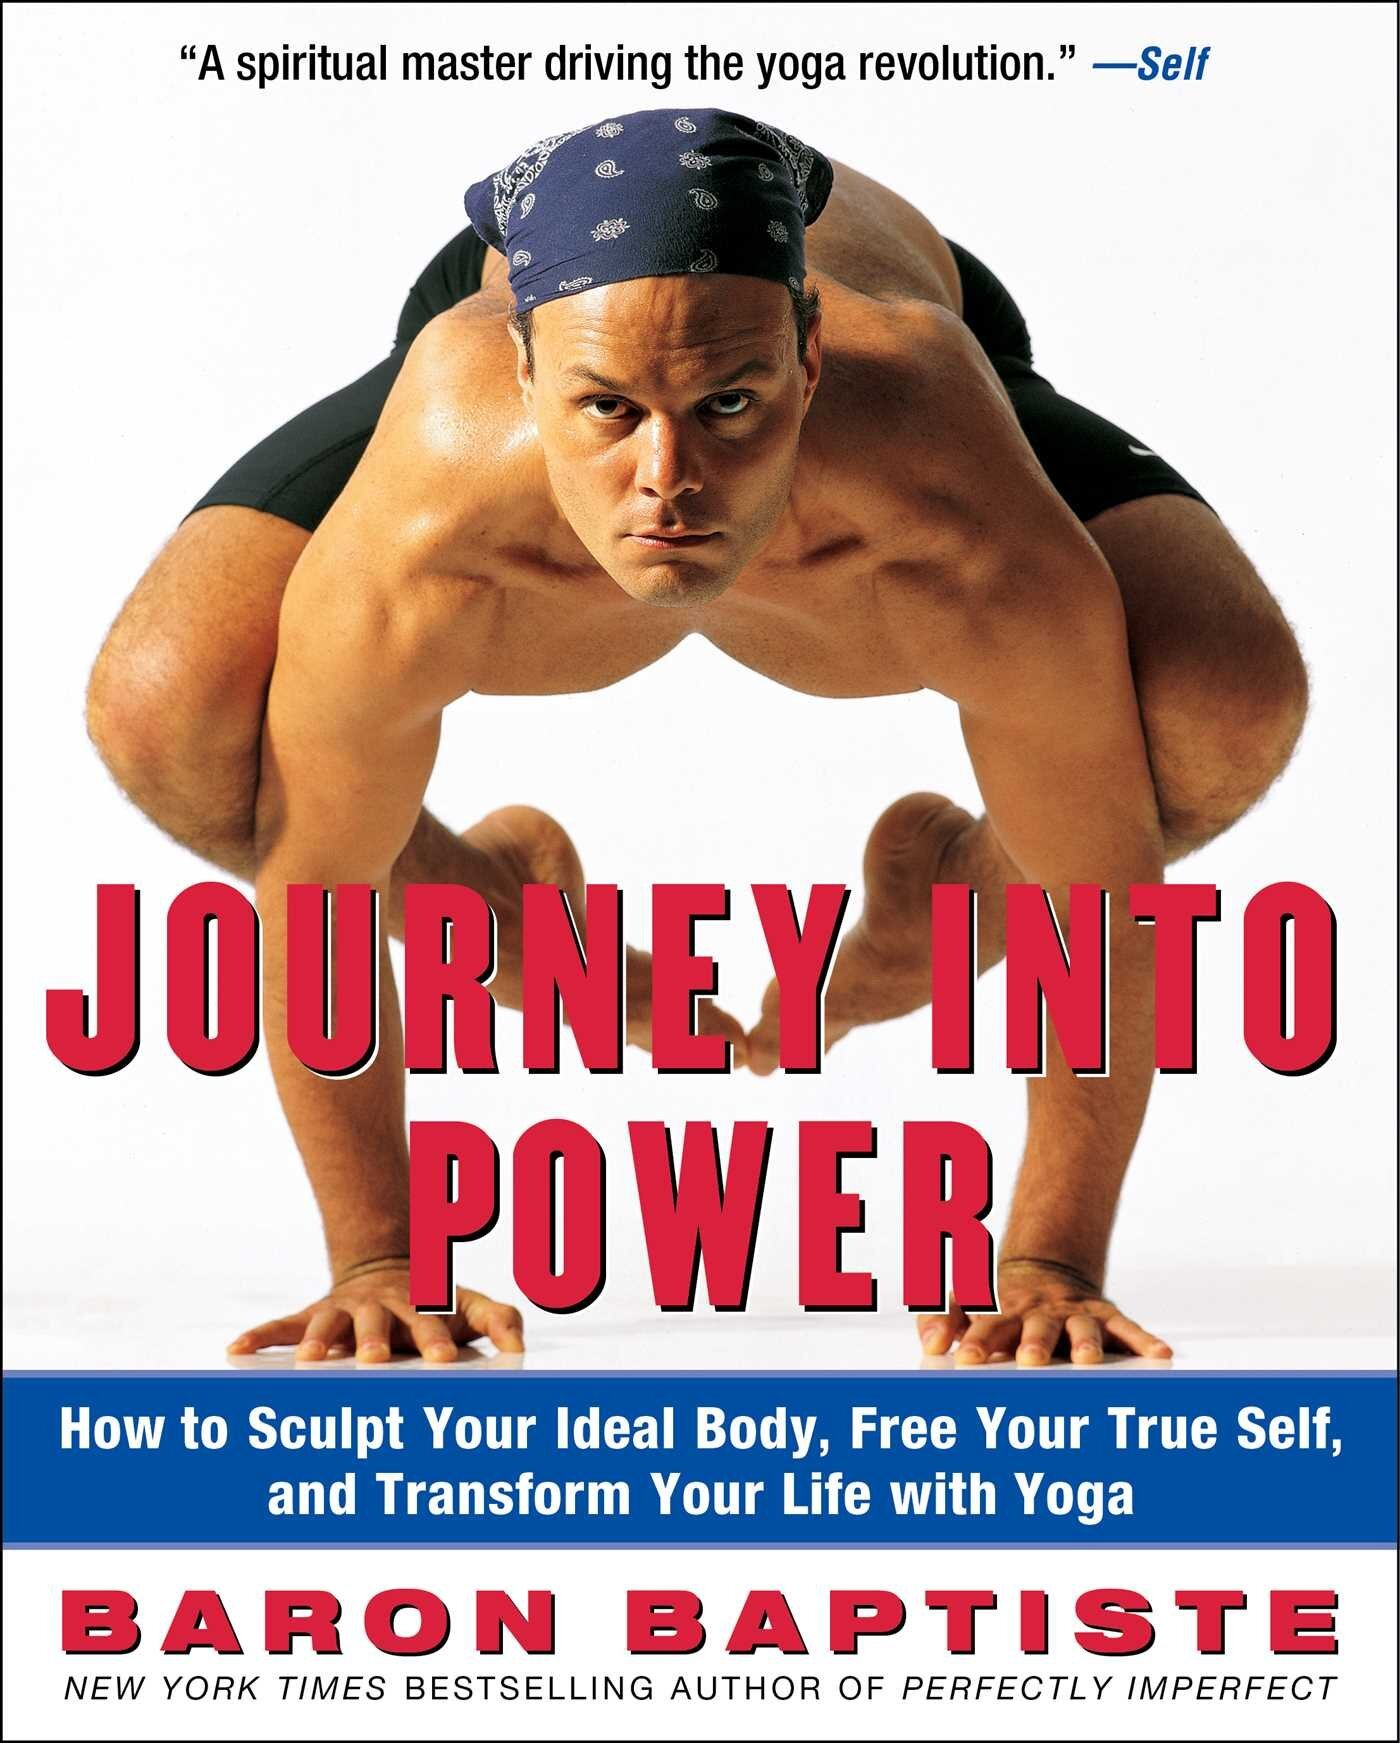 - Journey into Power: How to Sculpt Your Ideal Body, Free Your True Self and Transform your Life with Yoga (2003)